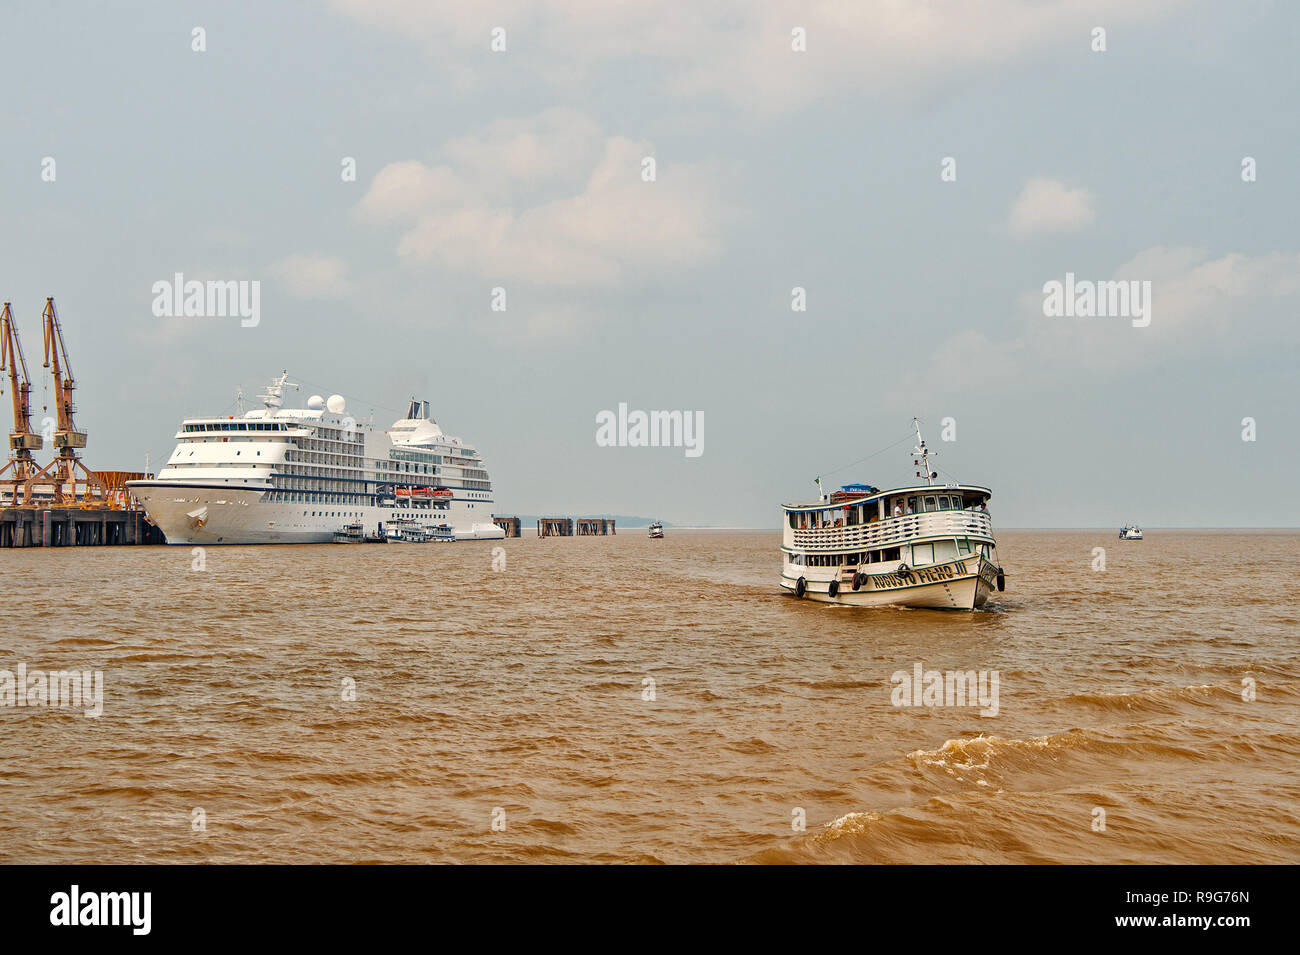 Santarem, Brazil - December 02, 2015: luxury lifestyle concept. Ship floating on sea and Seven Seas Navigator cruise liner in dock on grey sky background. Tourist destination and travelling - Stock Image